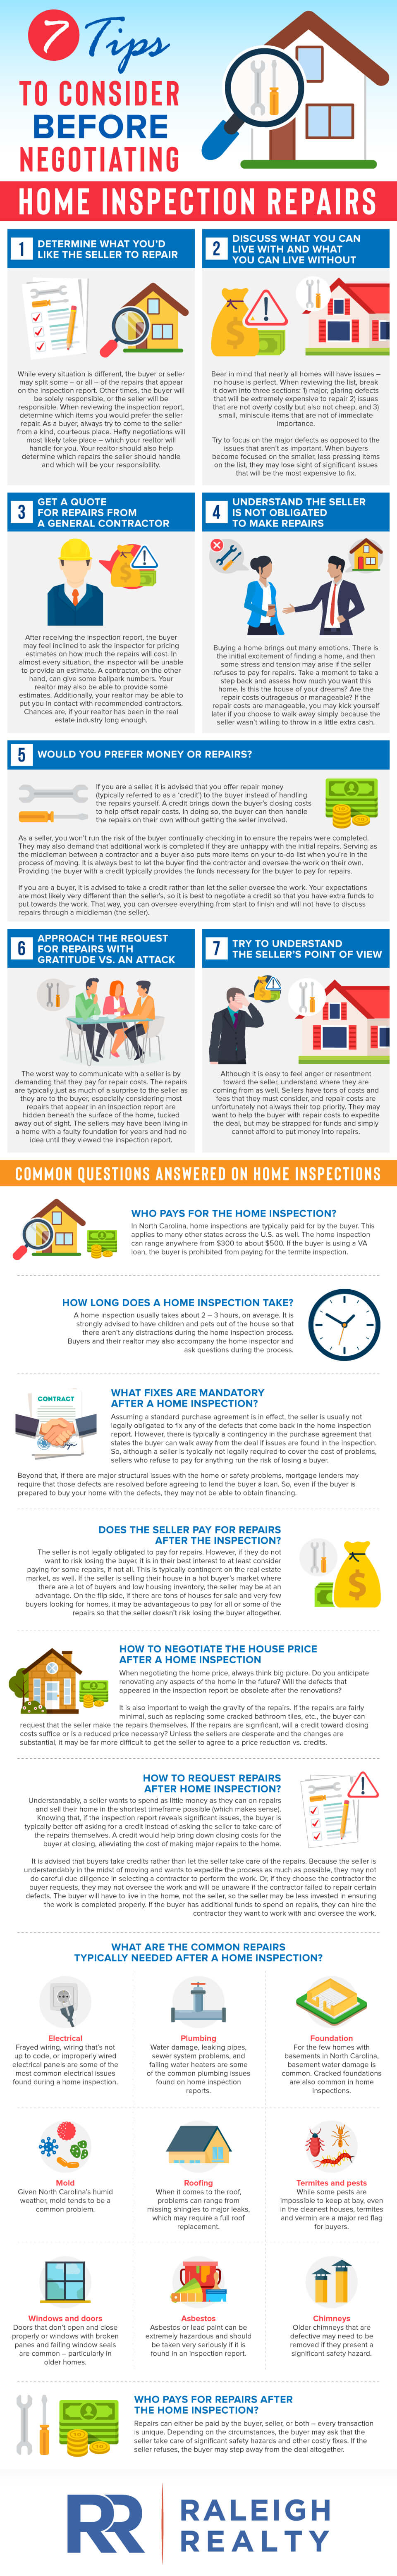 7 Tips To Consider Before Negotiating Home Inspection Repairs